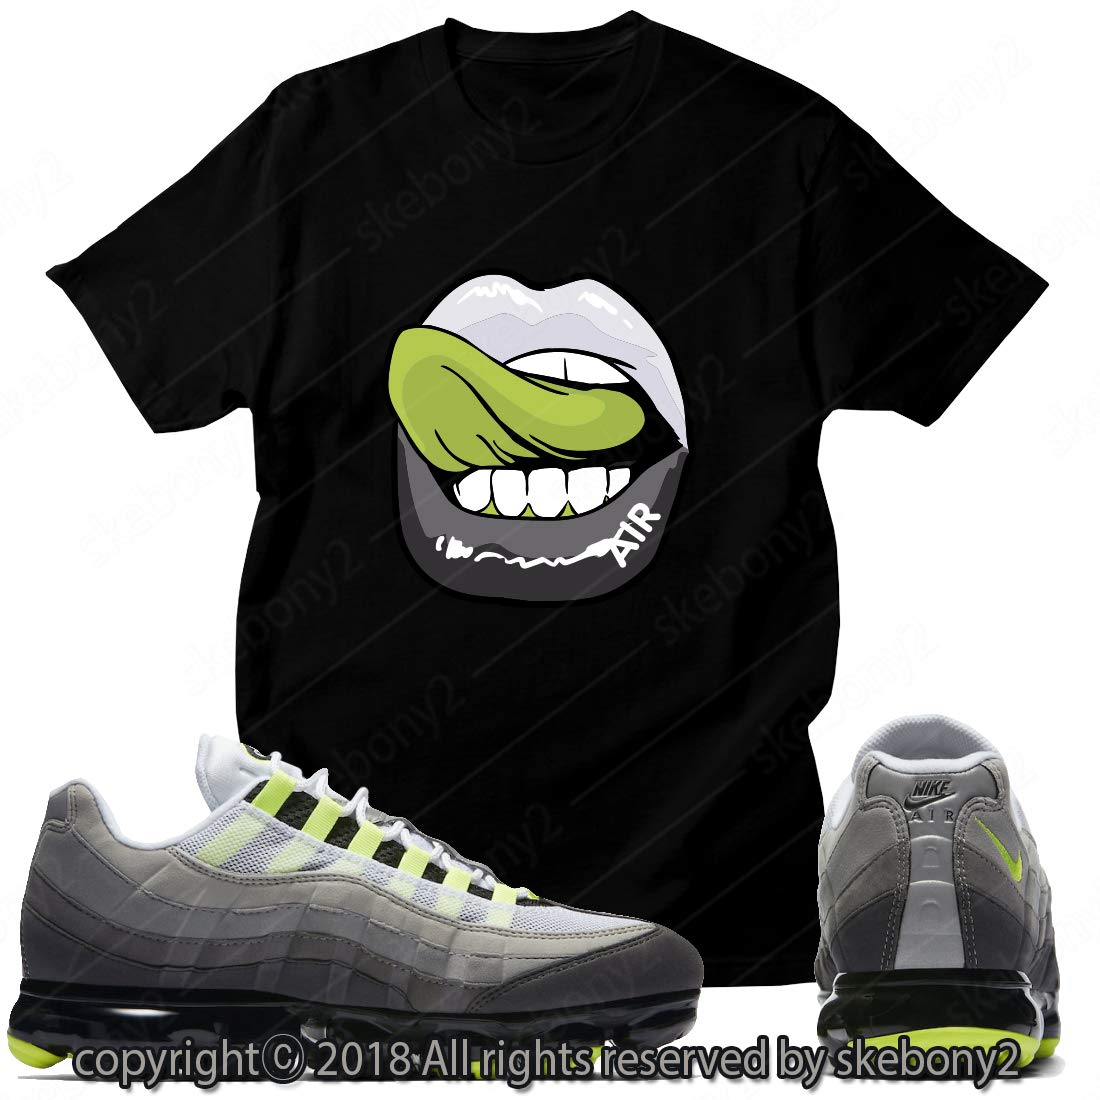 Custom T Shirt Matching Style Of Nike Air Vapormax 95 Its Electric